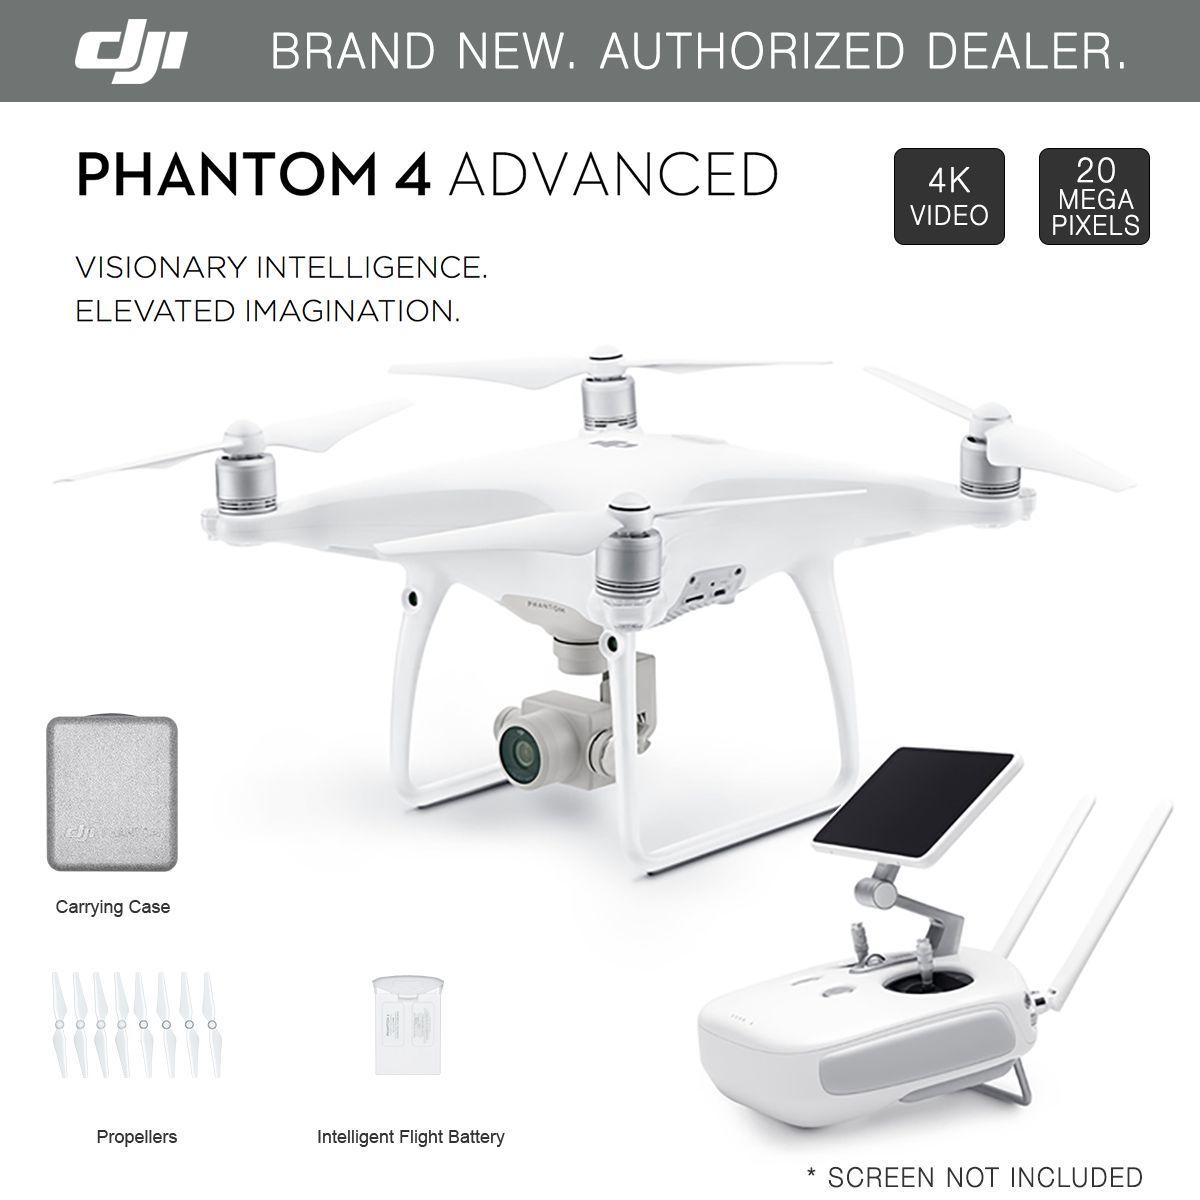 Dji Phantom 4 Advanced Gps Drone With 4k 20mp Hd Camera Brand New 3 Standard One Battery 27k Video White